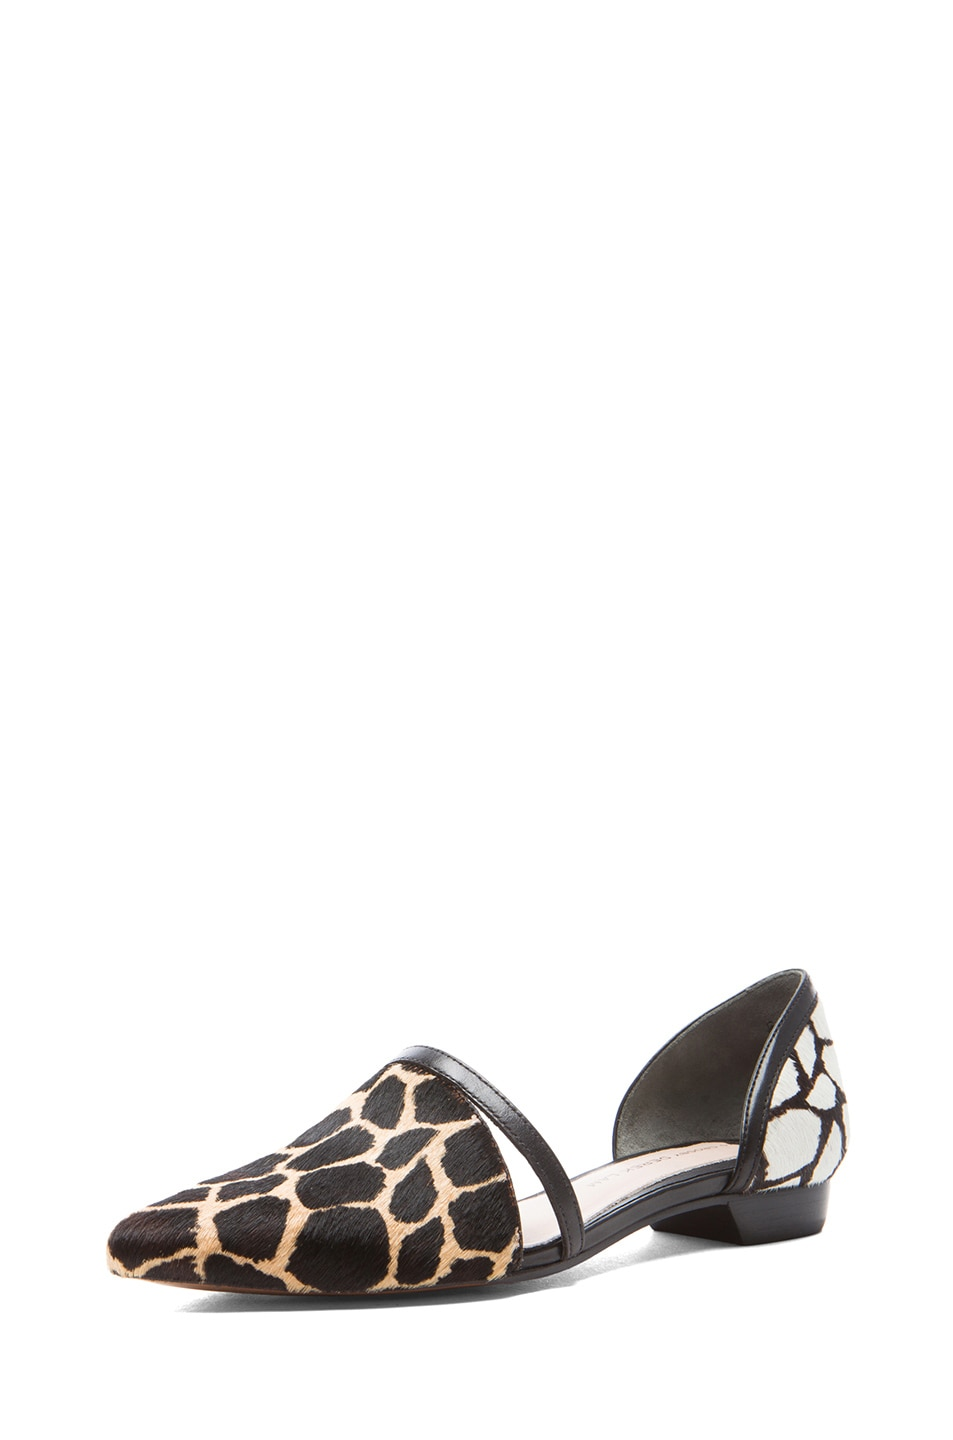 Image 2 of DEREK LAM 10 CROSBY Action Too Calf Hair Flats in Animal Print